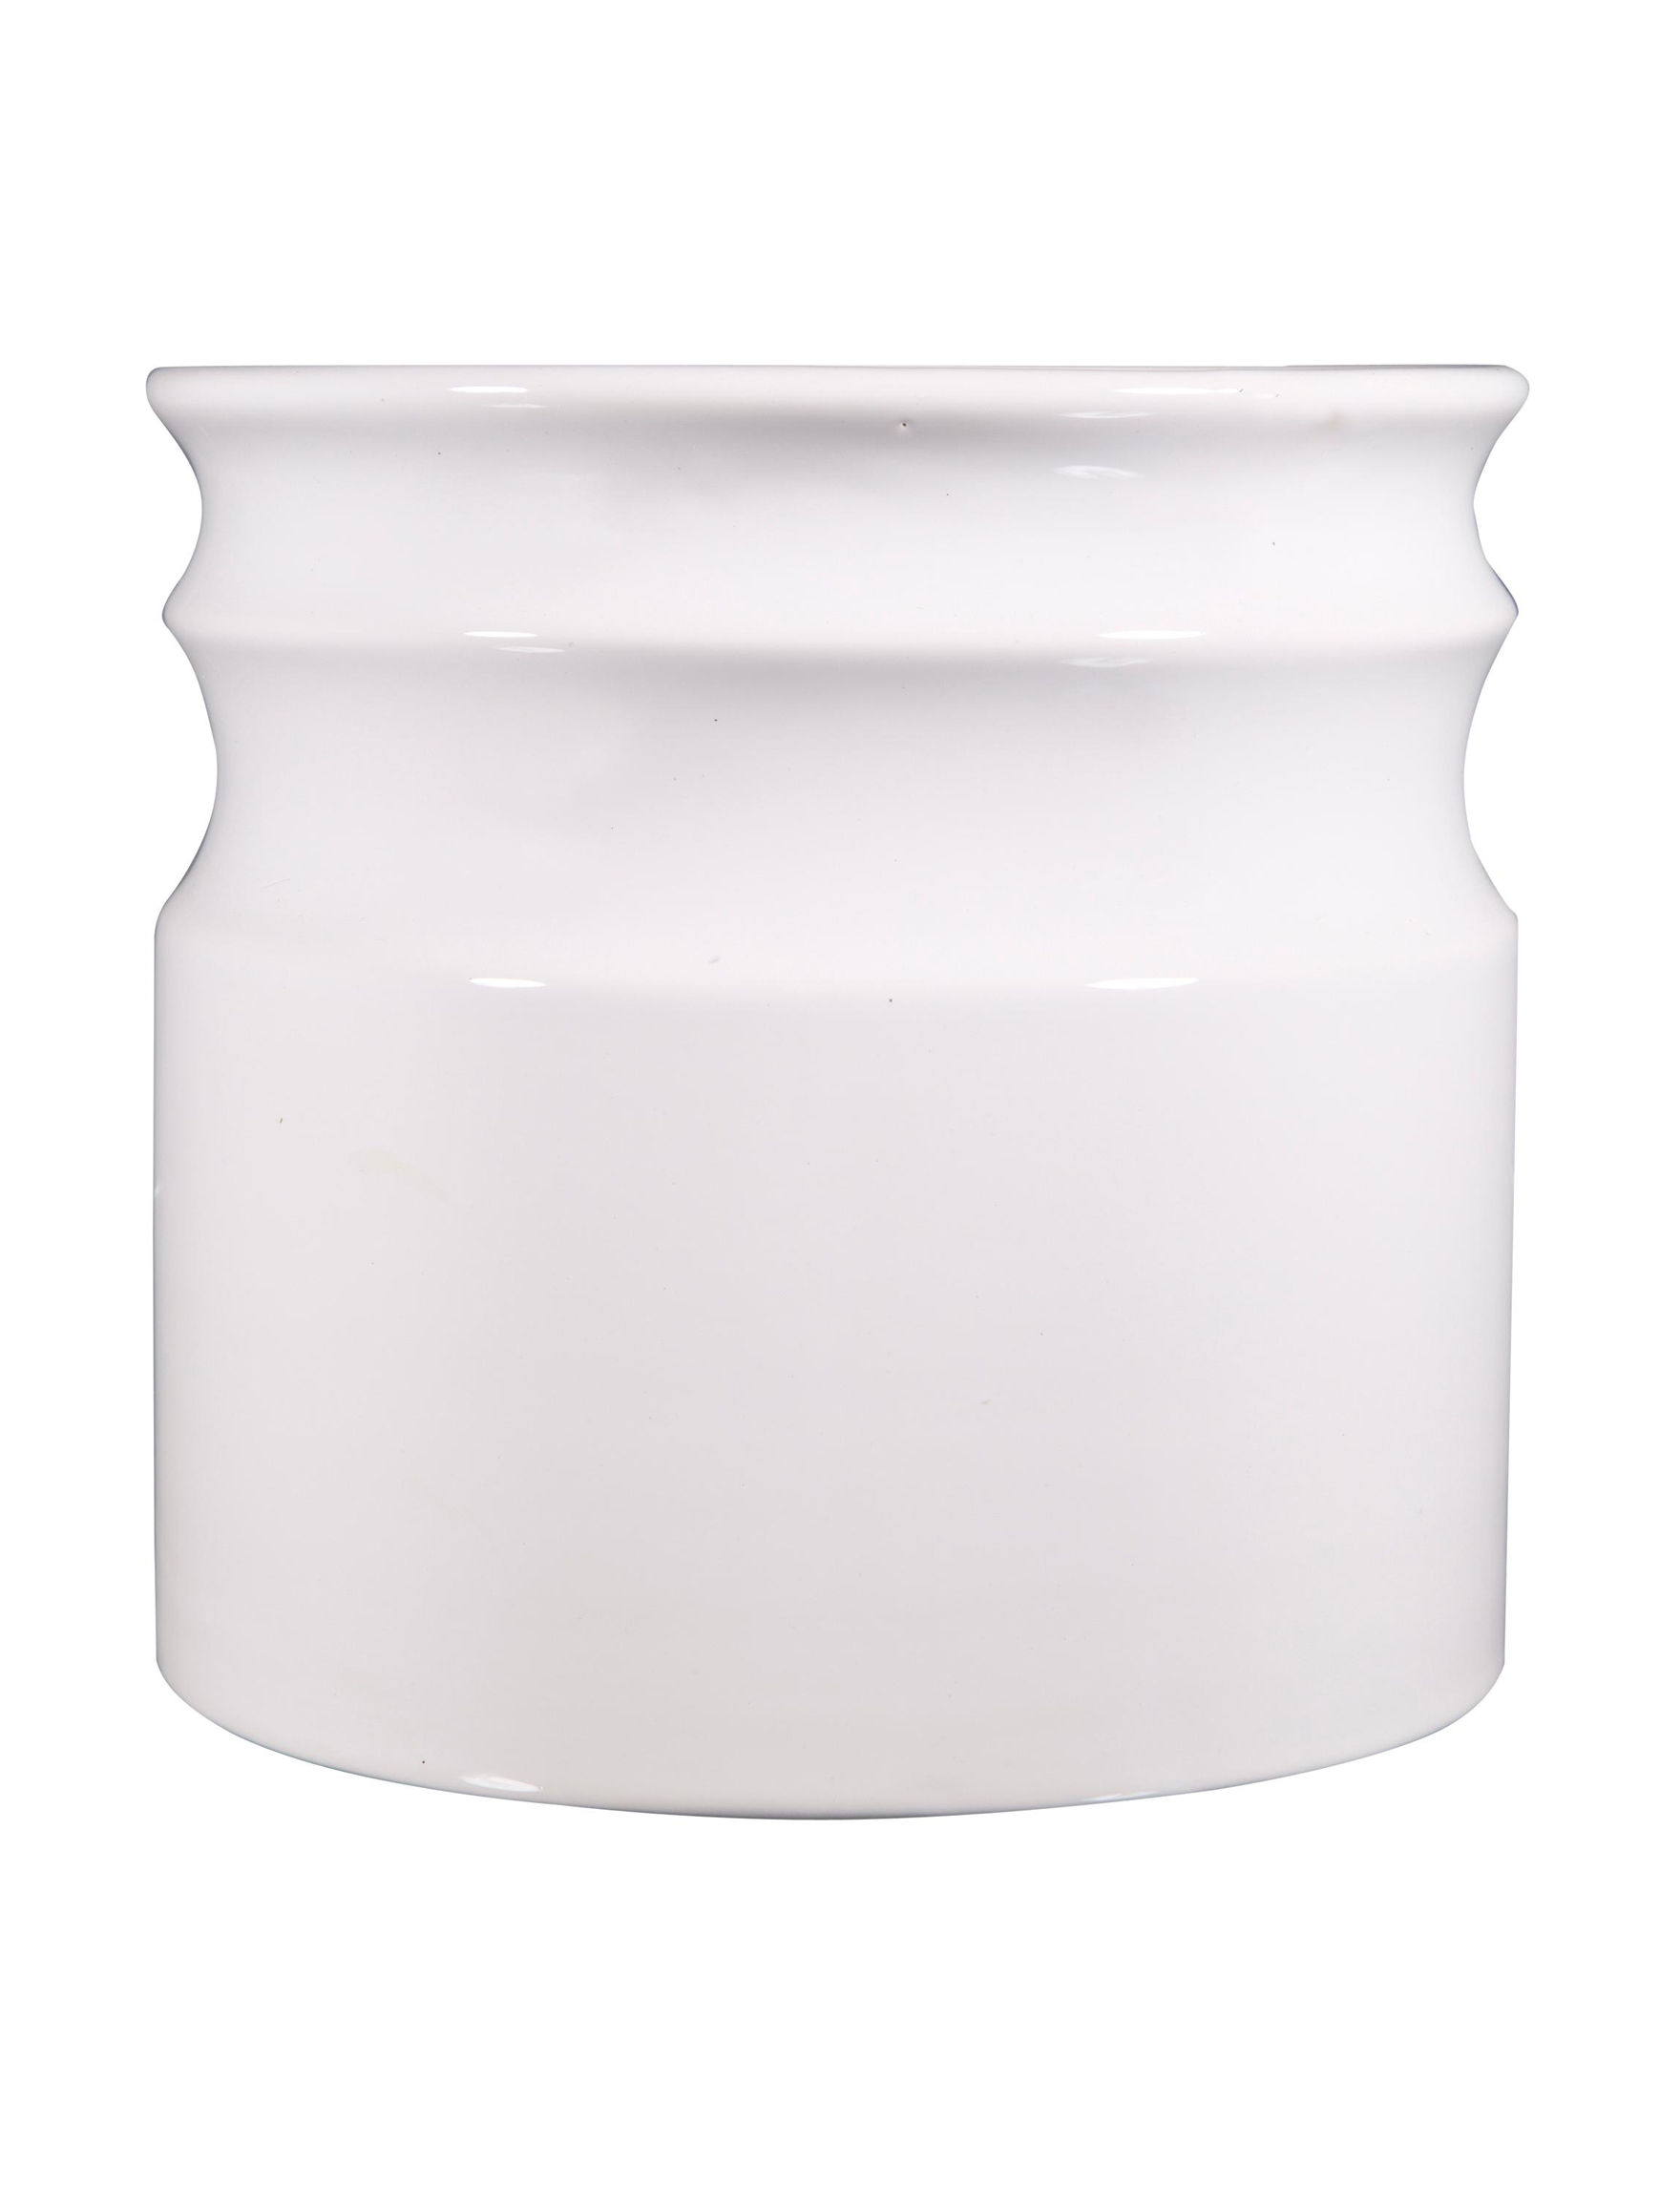 Home Essentials White Serveware